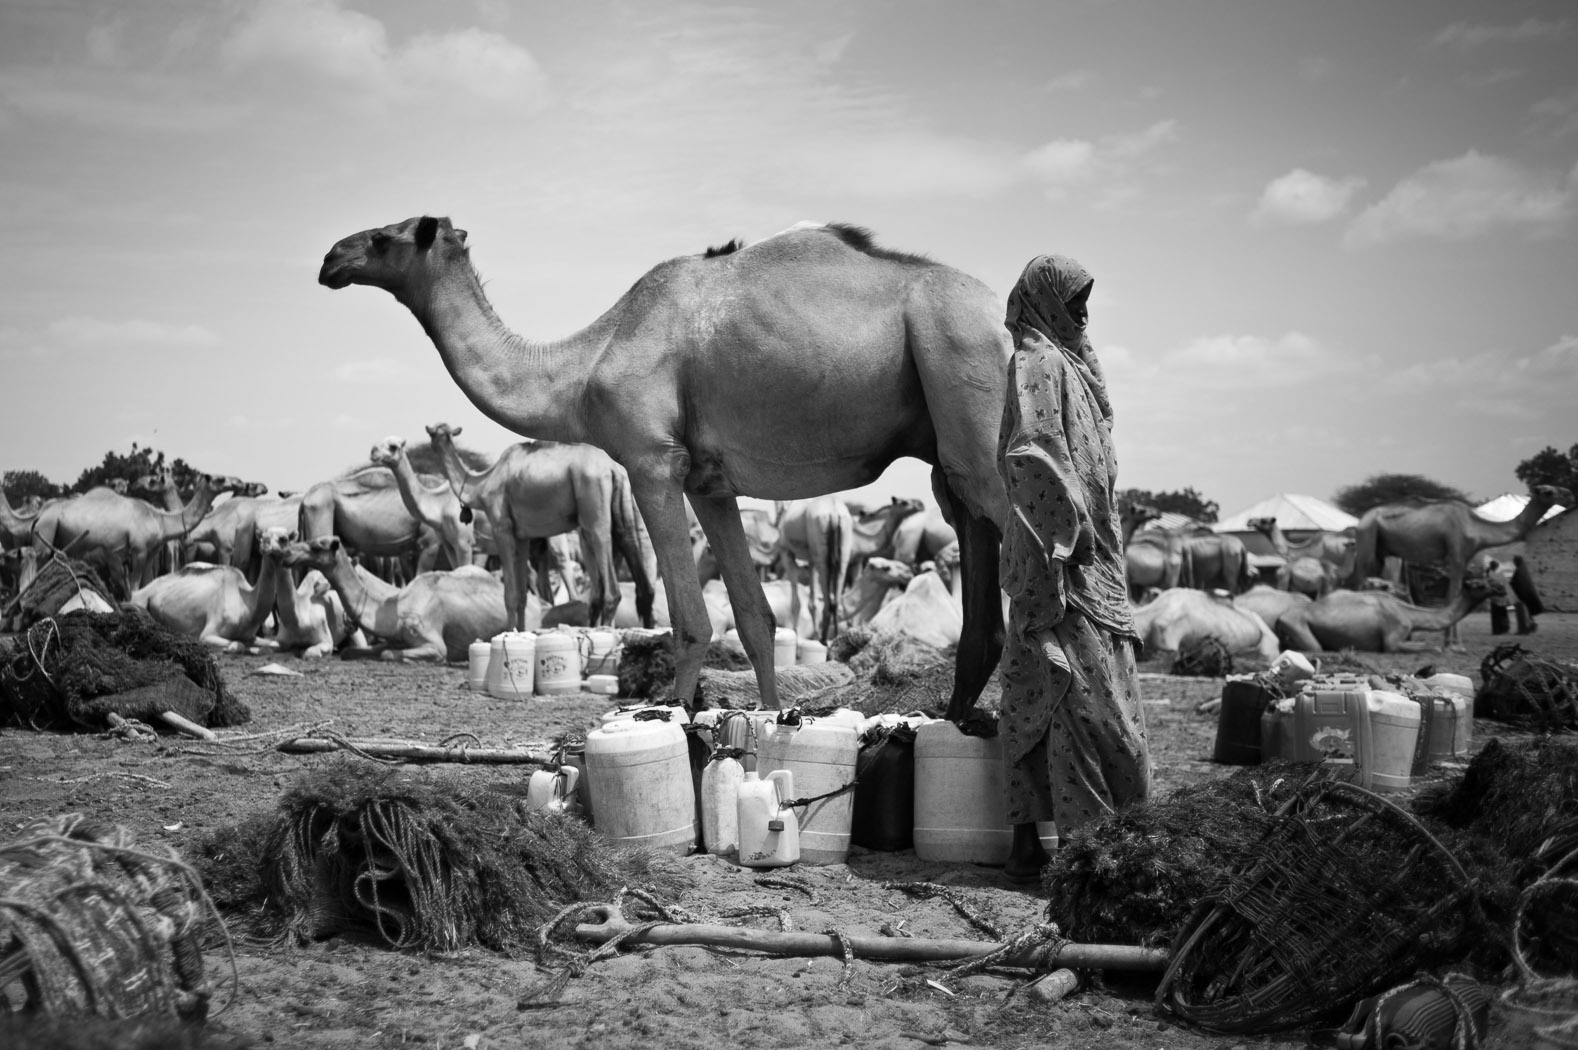 A woman collects water to transport back to her home by camel in the Somali border town of Dhobley. The town has just two boreholes for approximately 5000 households, and many of those fleeing from all over South-Central Somalia have passed through Dhobley on their way to Kenya's Dadaab refugee camp, further straining the resources for an already weakened community.